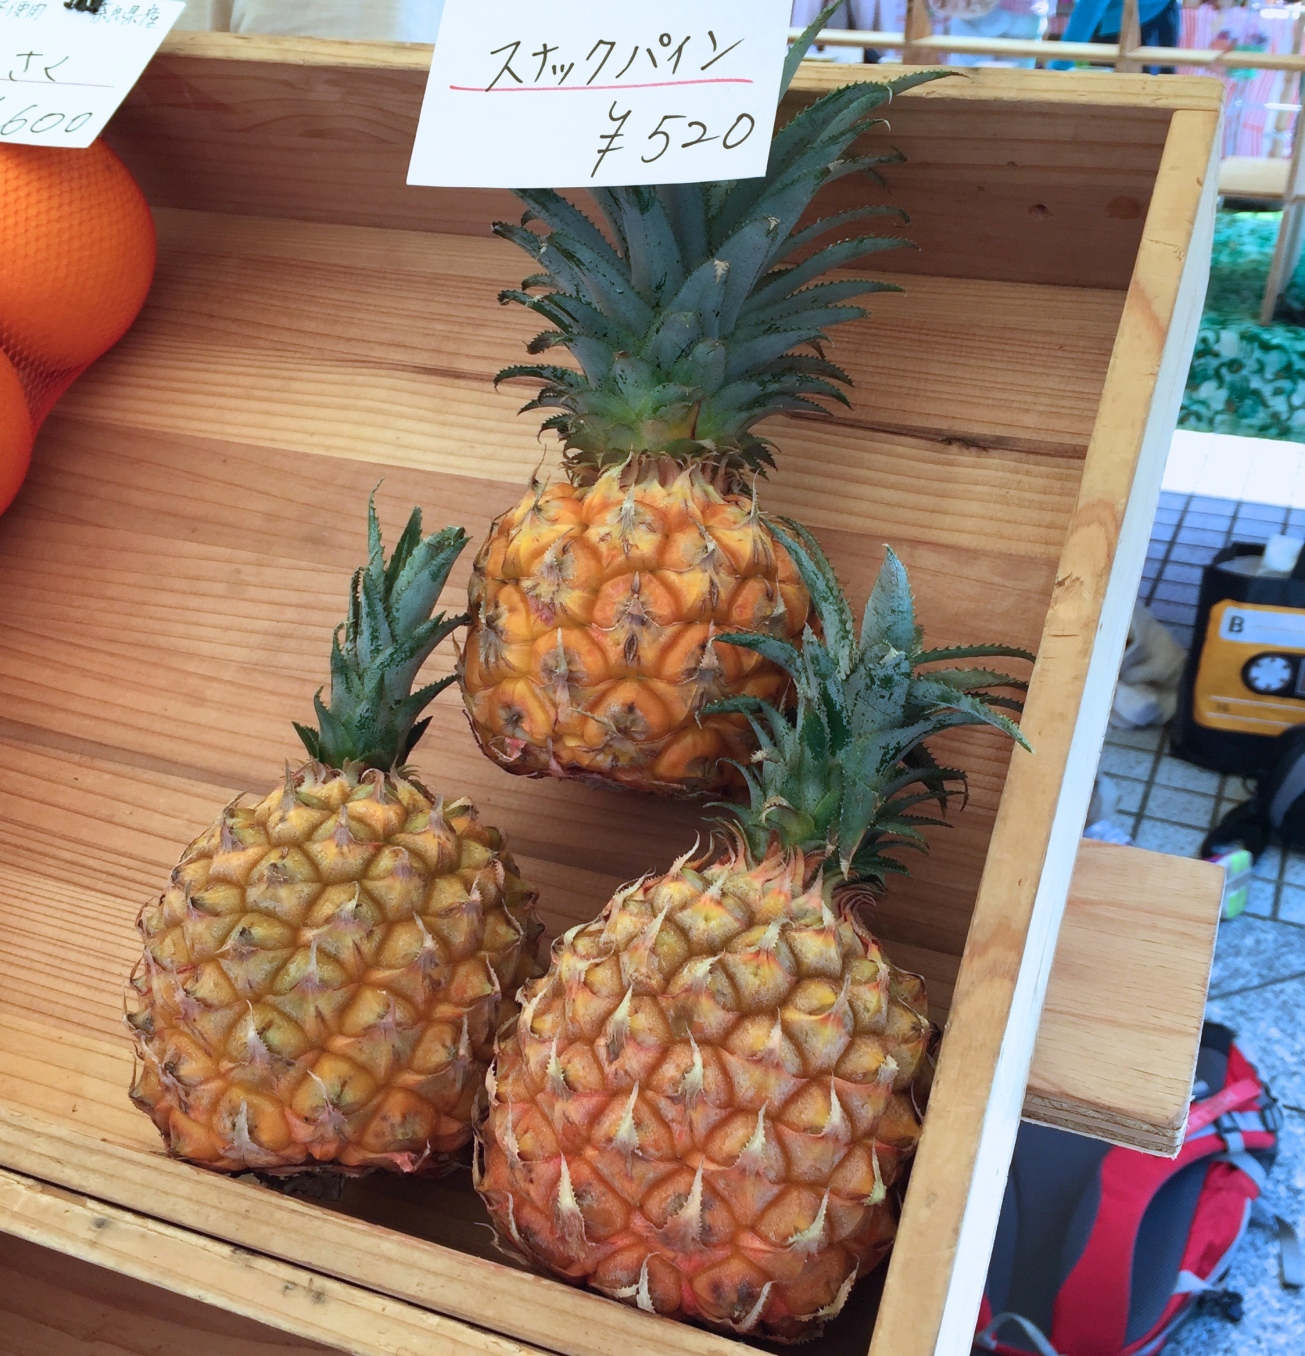 Aren't these pineapples way too cute to eat??